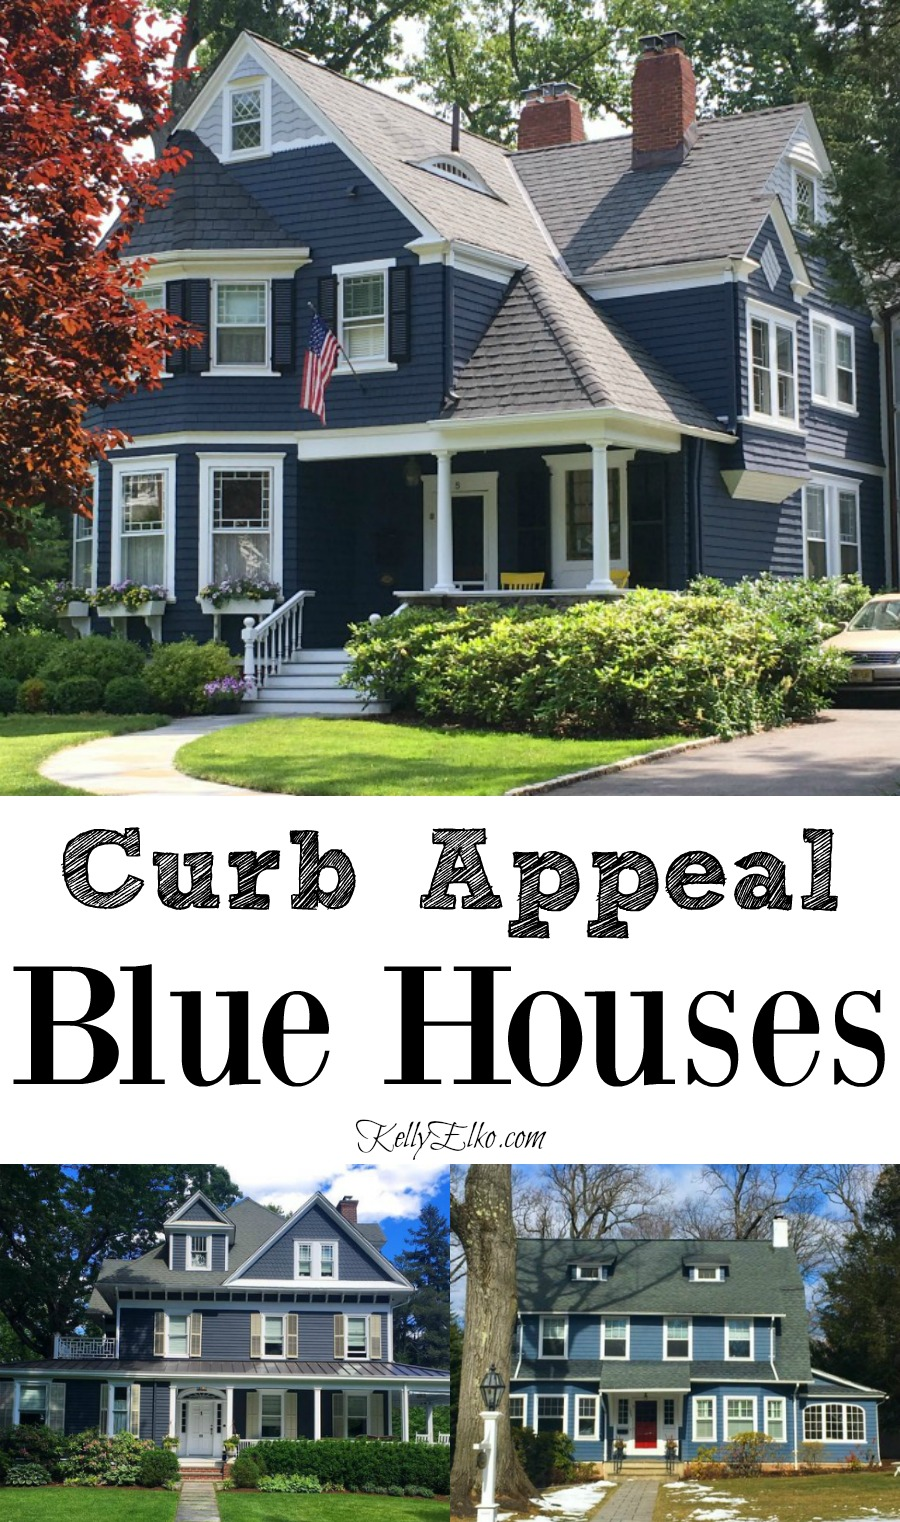 Blue House Exteriors - go bold with exterior paint kellyelko.com #bluehouses #bluepaint #curbappeal #bluehouse #paintcolors #exteriorpaint #blueexteriors